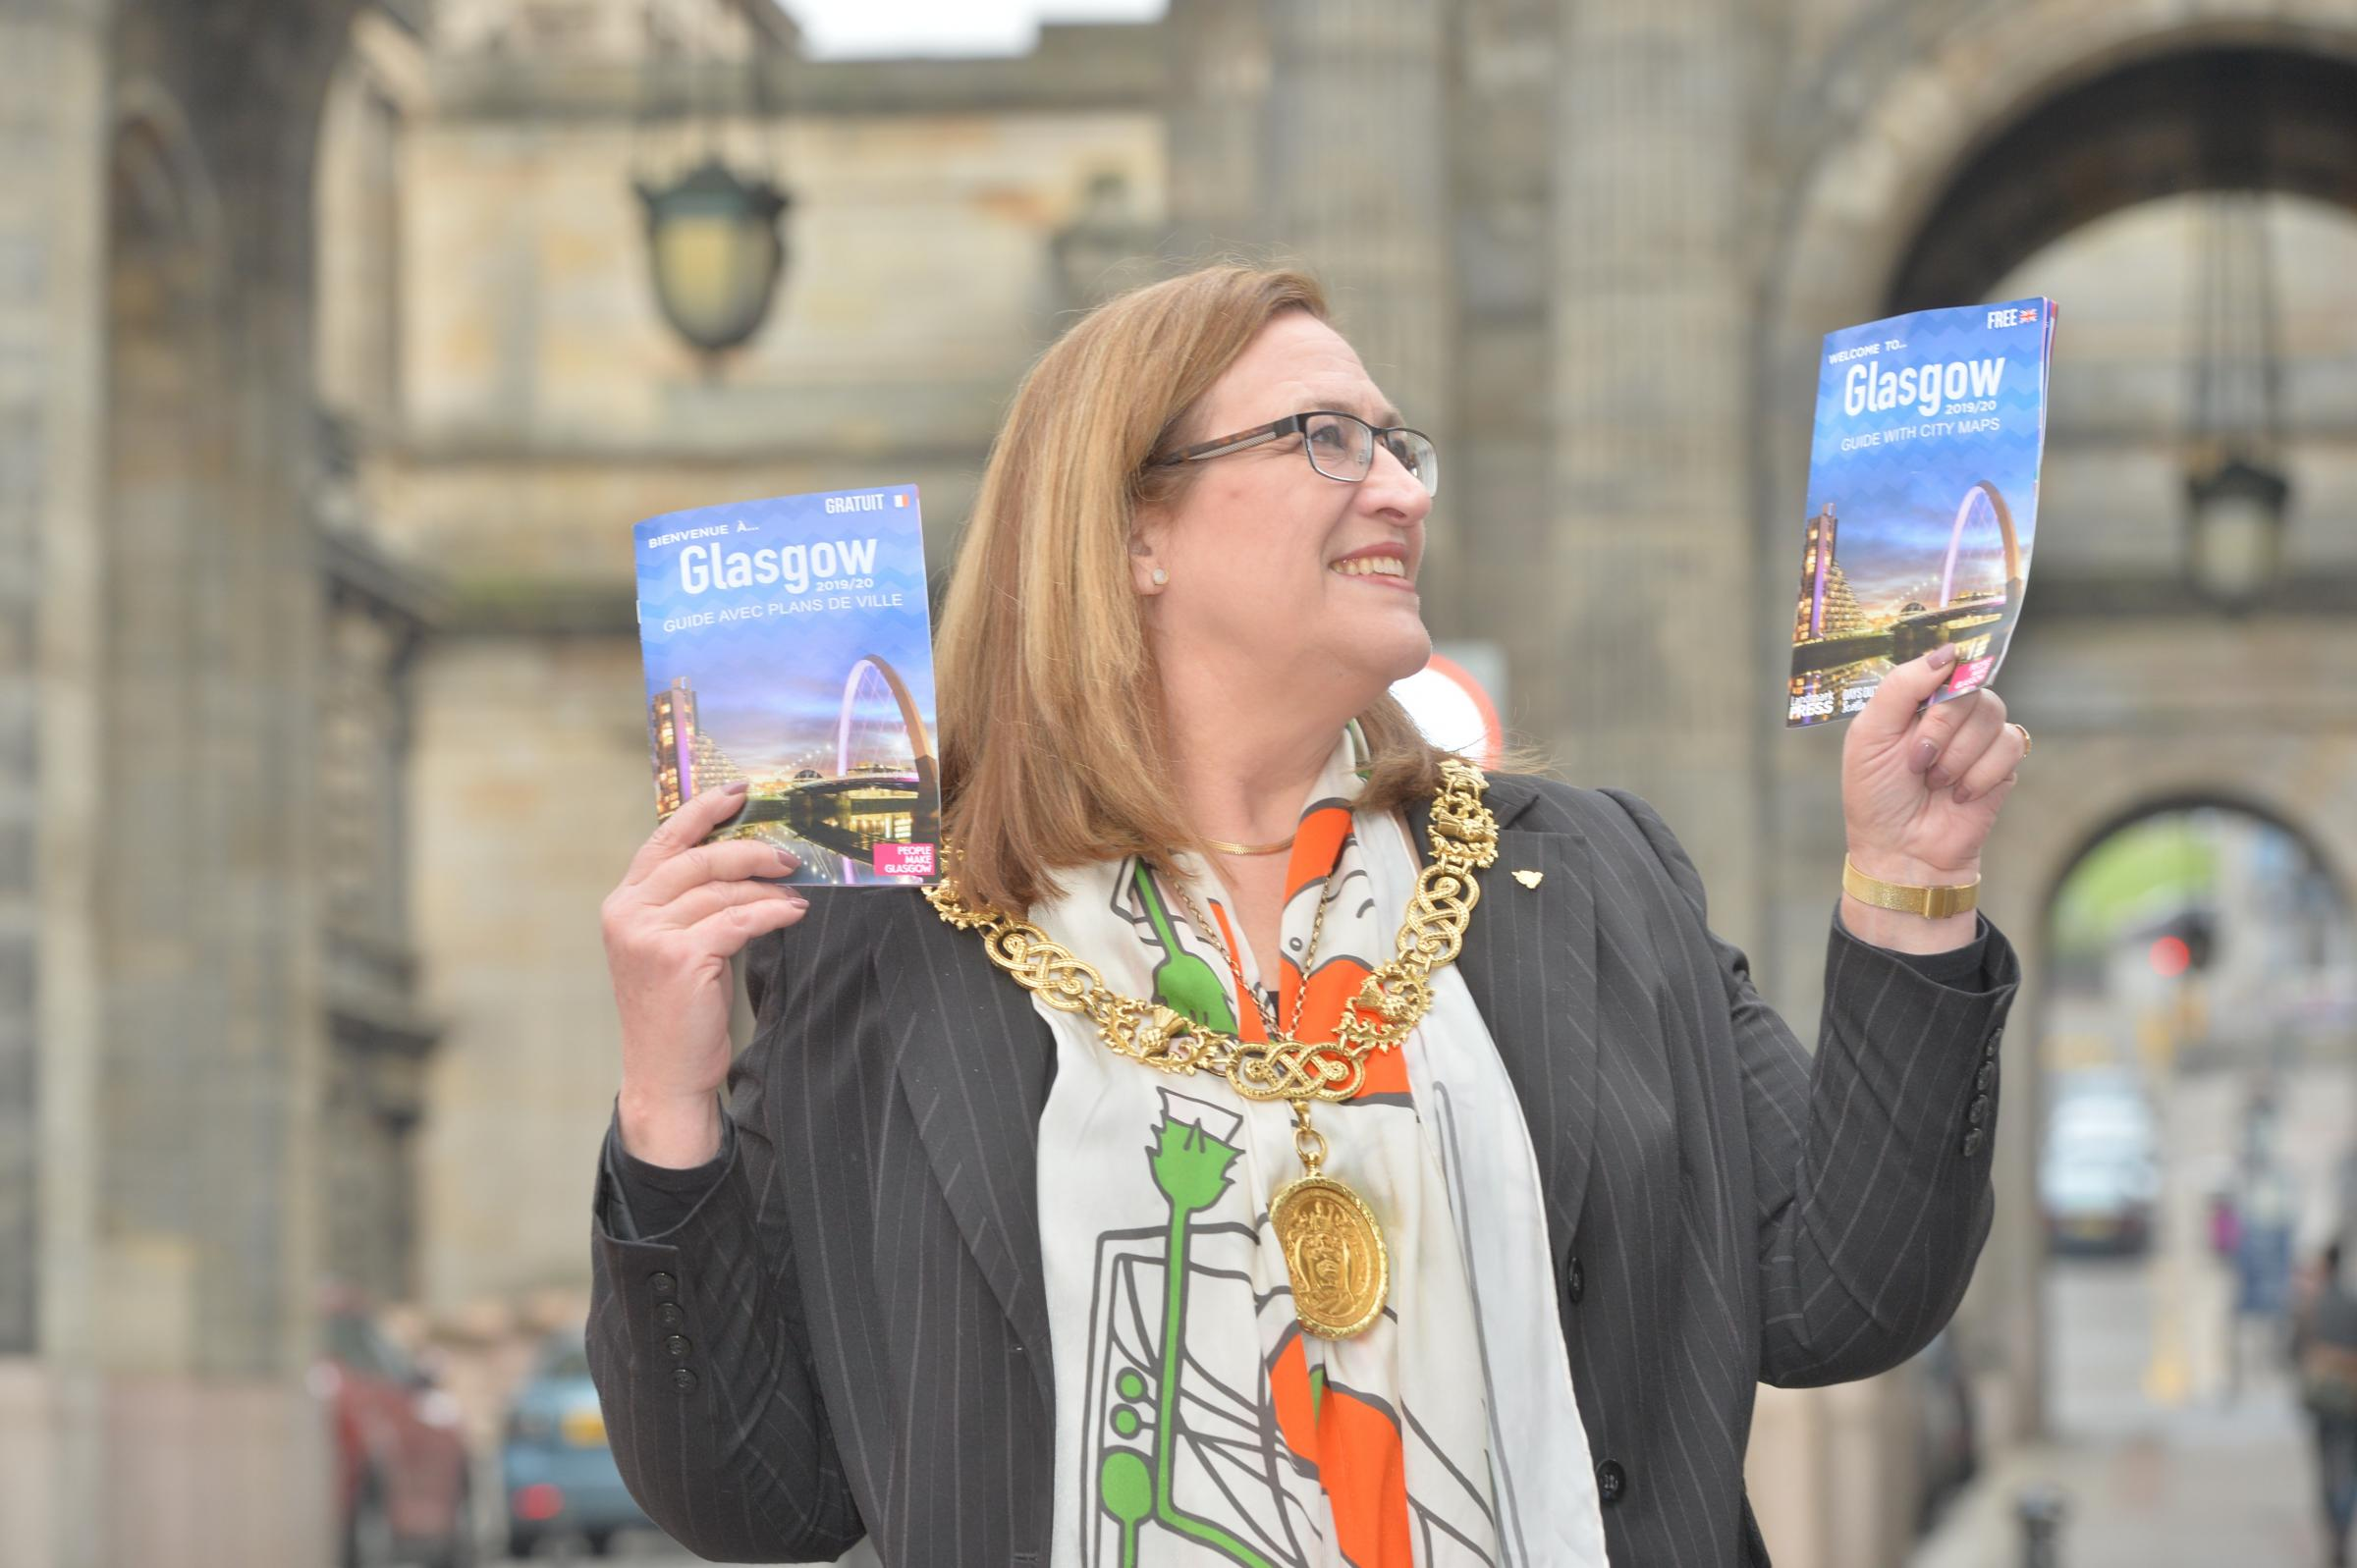 Glasgow tour guide to bring multilingual boost to city